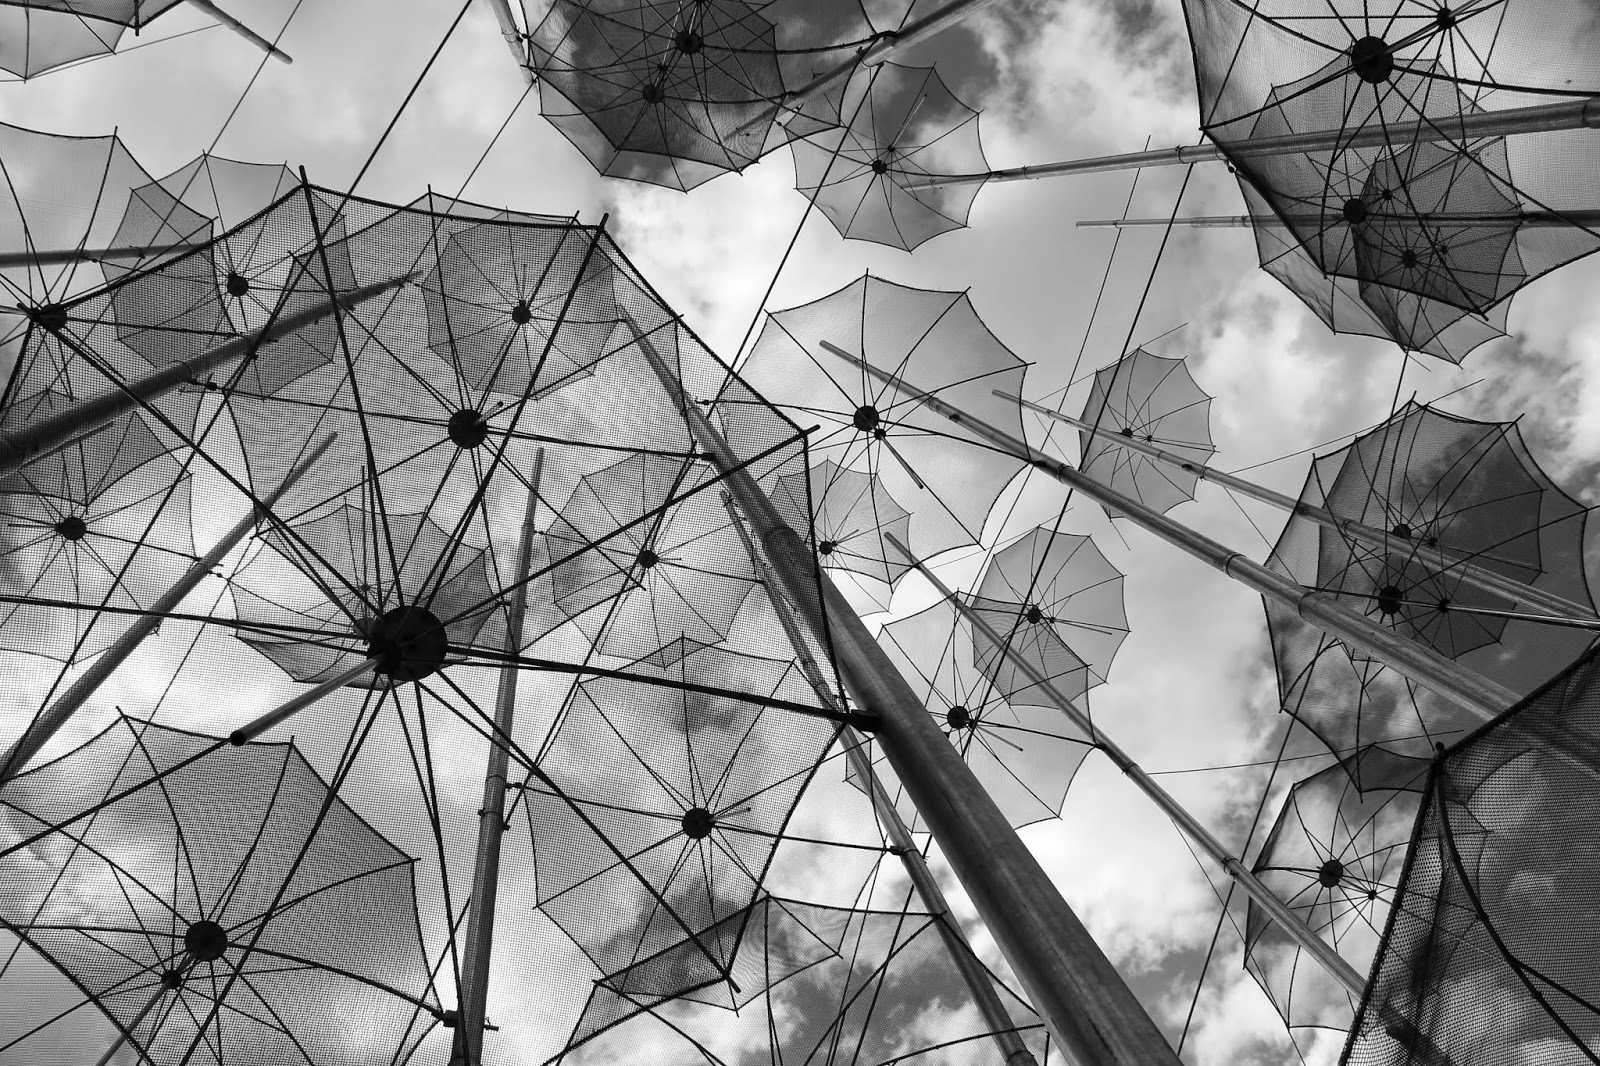 Artistic wallpapers black and white wallpapers city wallpapers free wallpapers travel wallpapers wallpapers